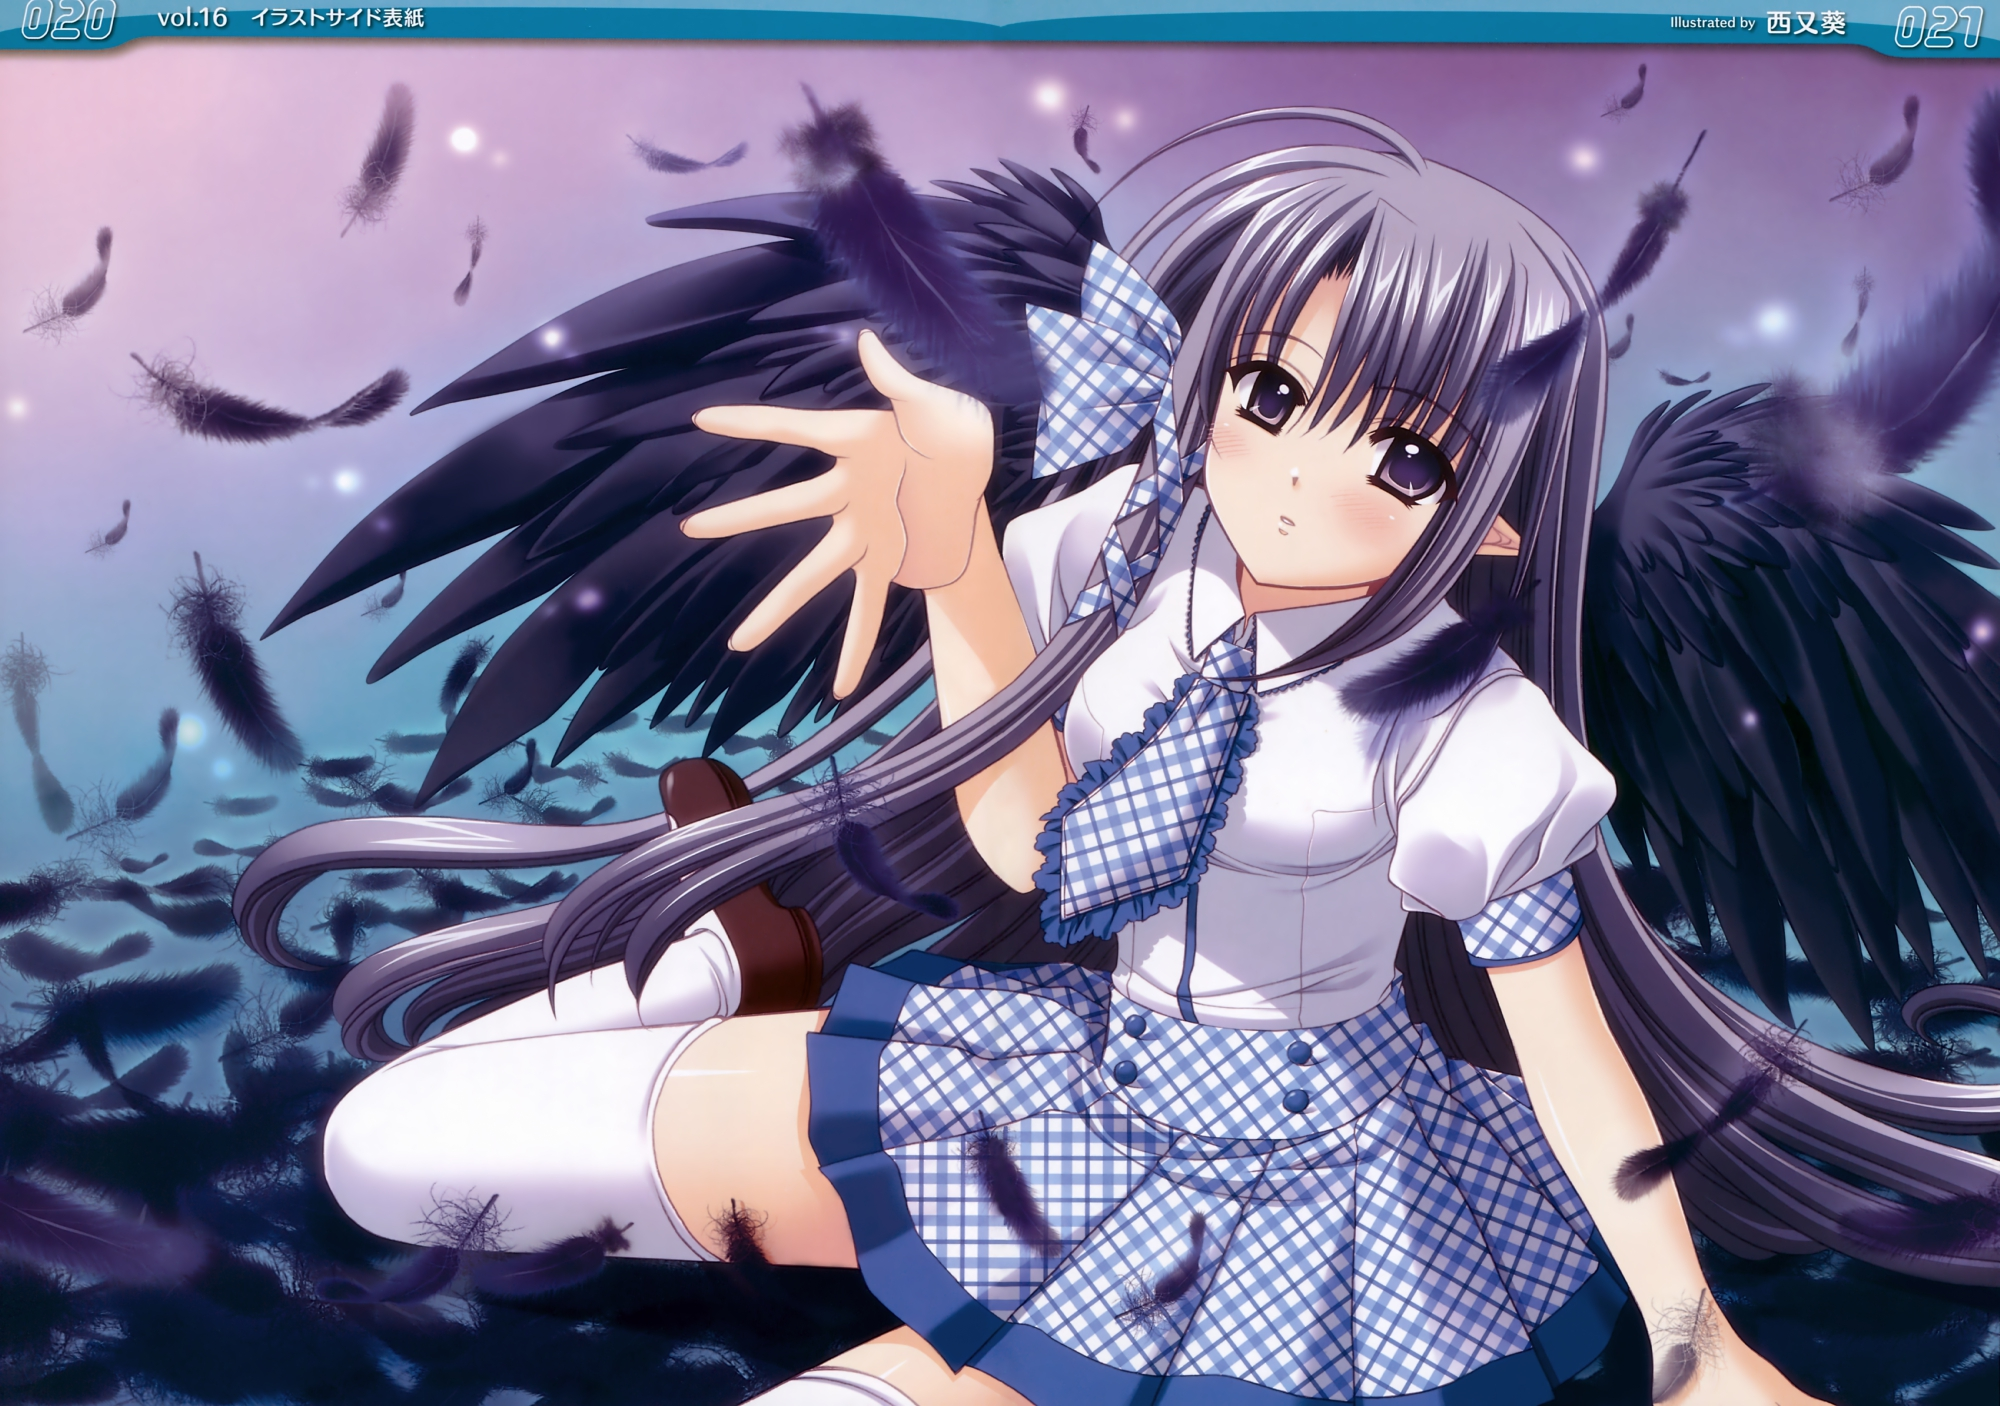 freyjalt_fall judgement_chime nishimata_aoi pointed_ears thighhighs tie wings